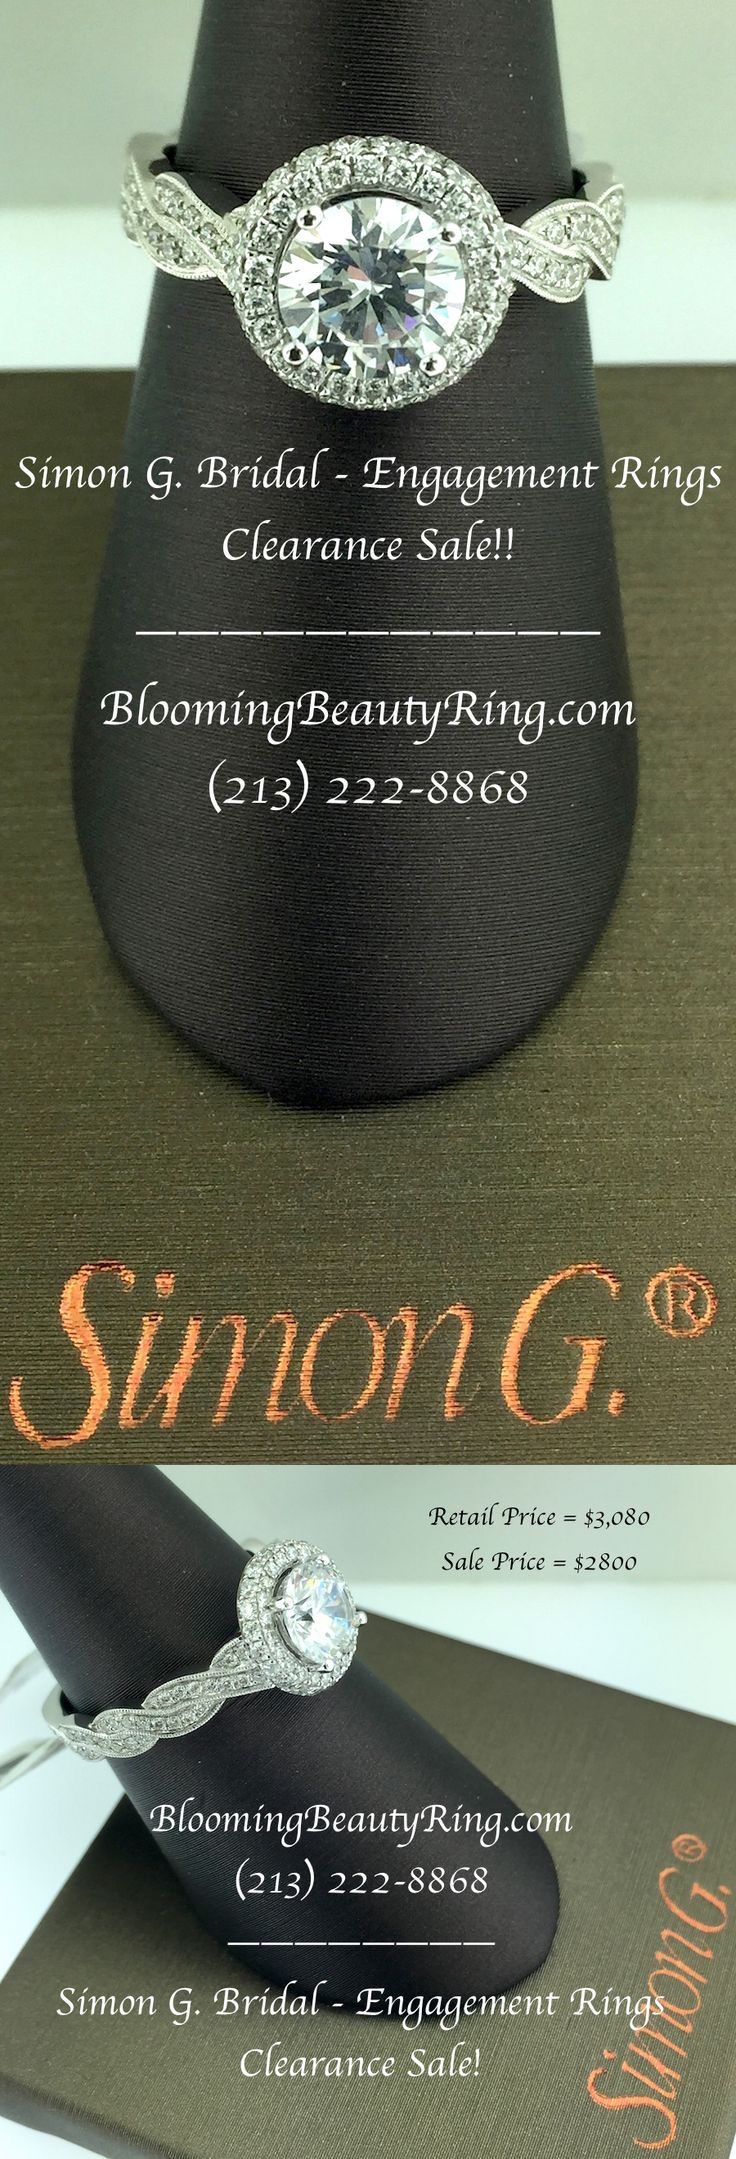 Simon G Bridal  Engagement Rings Clearance Sale!! We Are Clearing